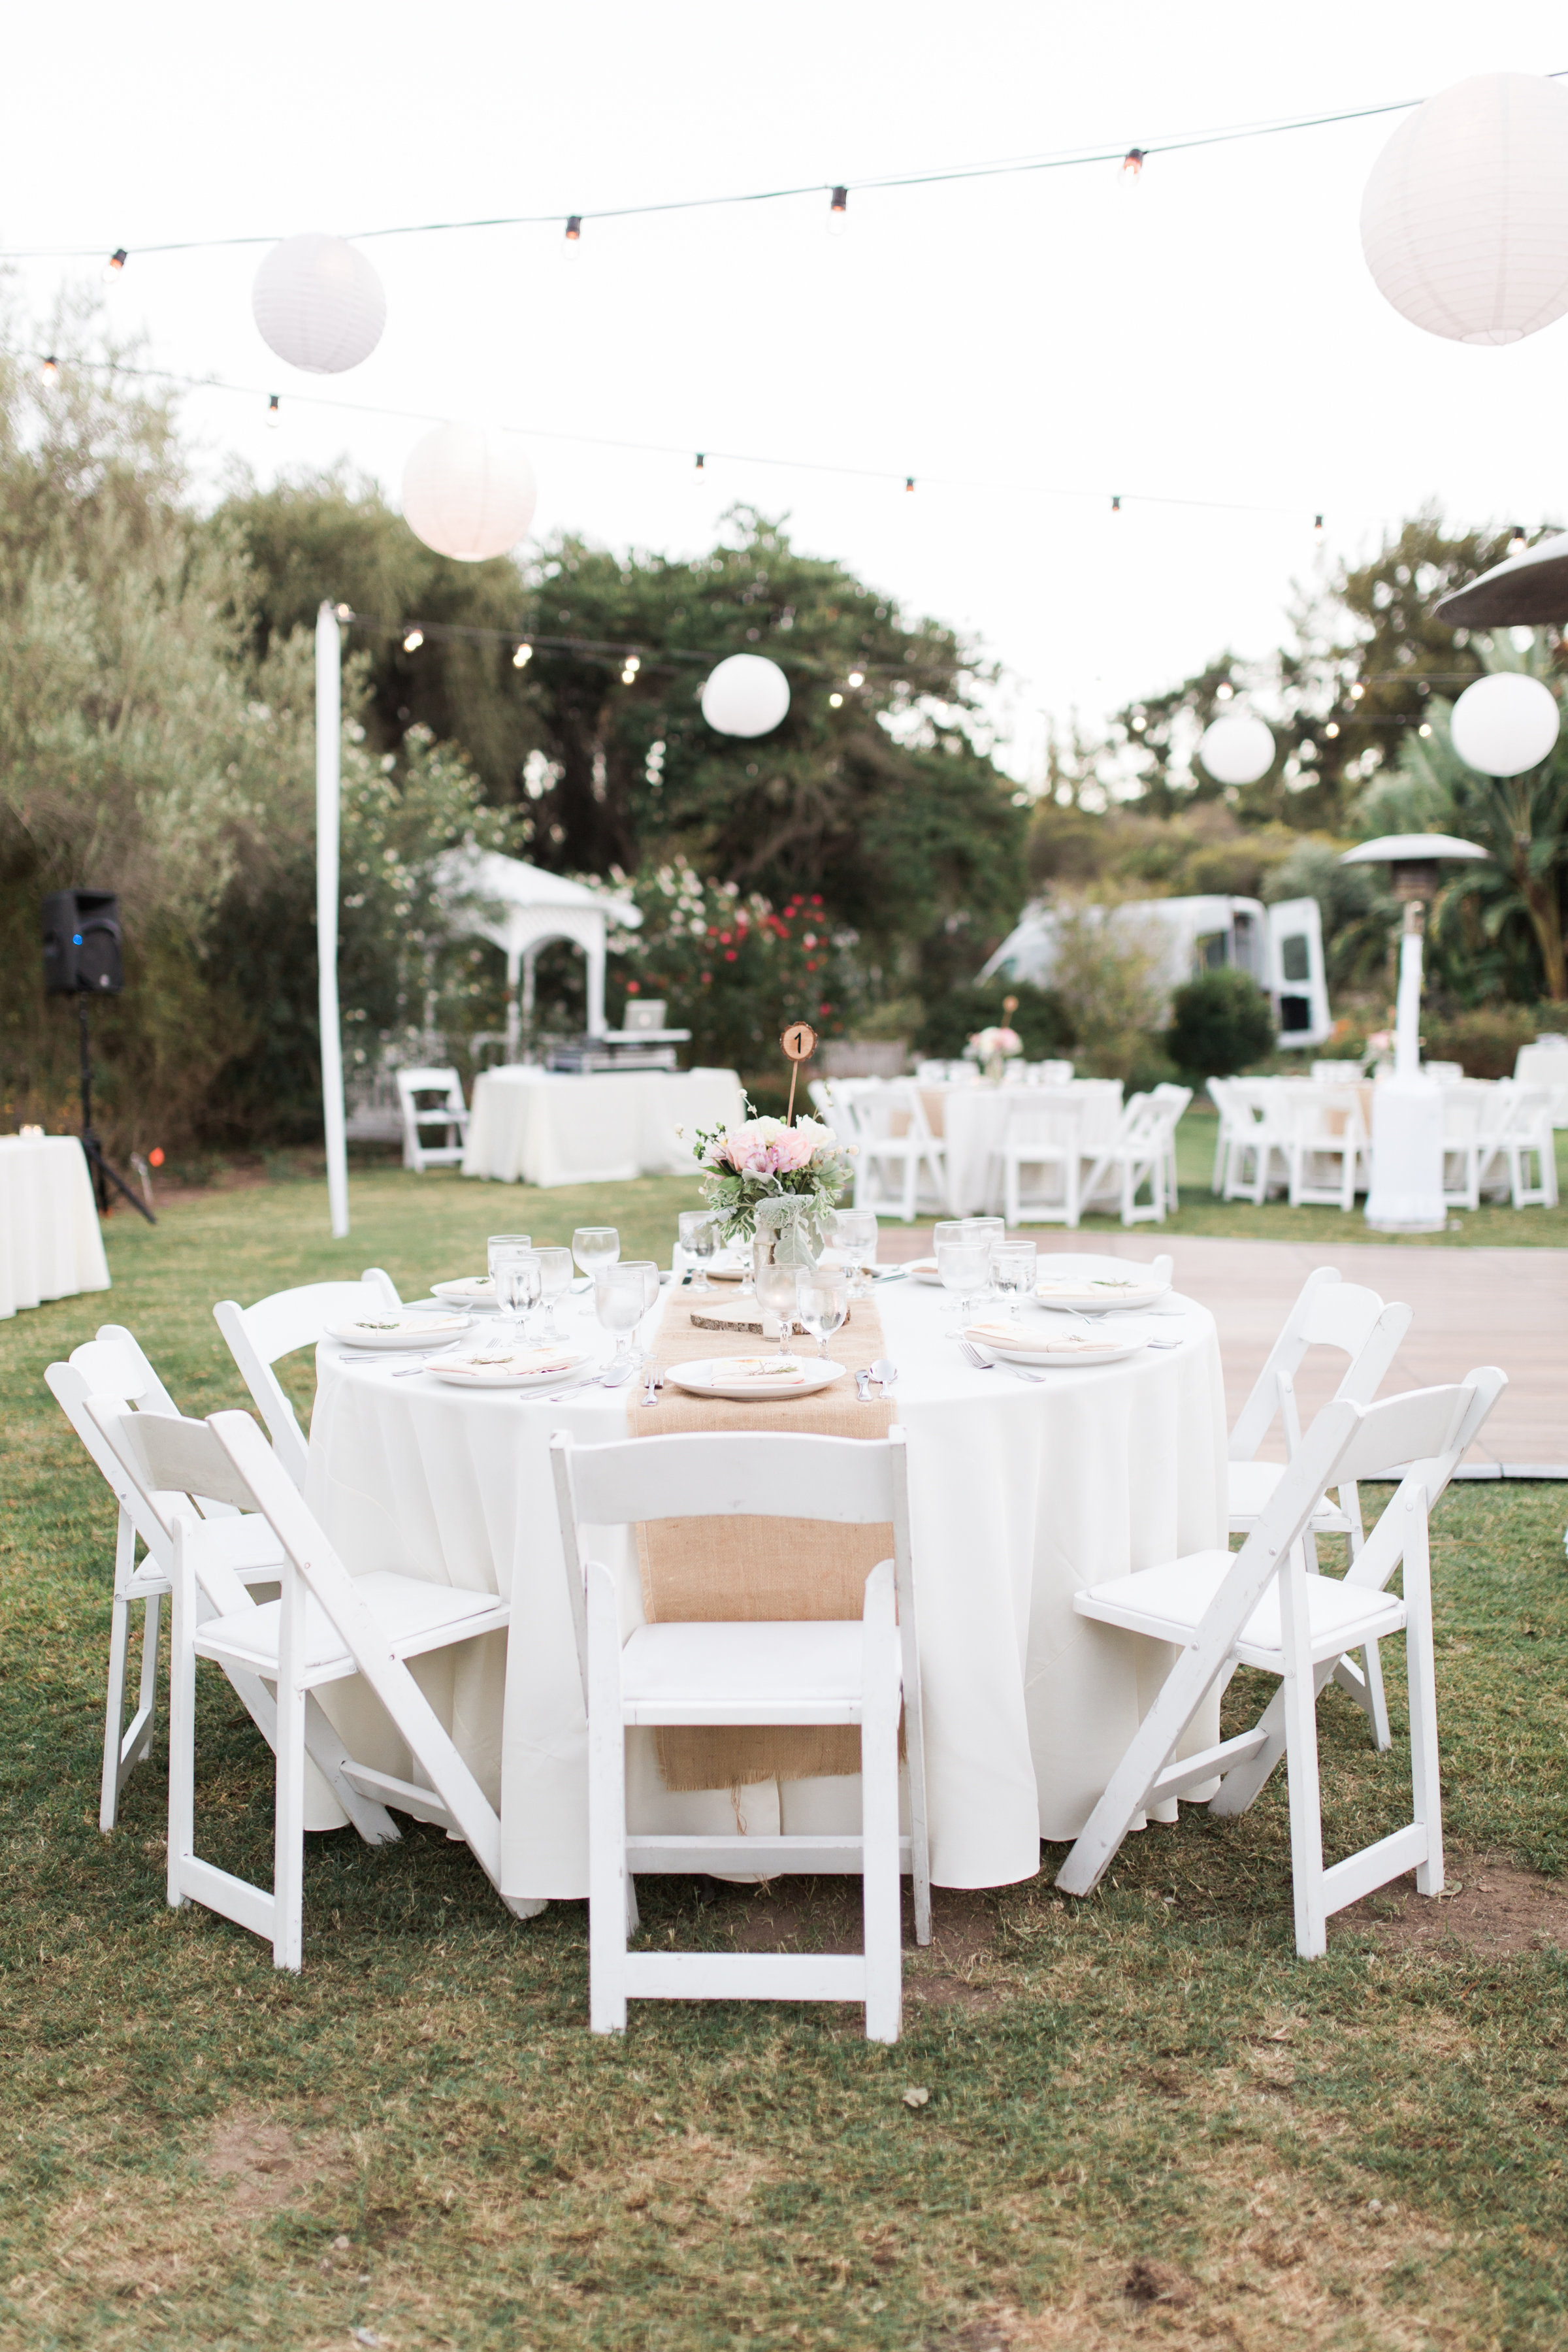 Wedding reception set up at the South Coast Botanic Garden with rustic decor